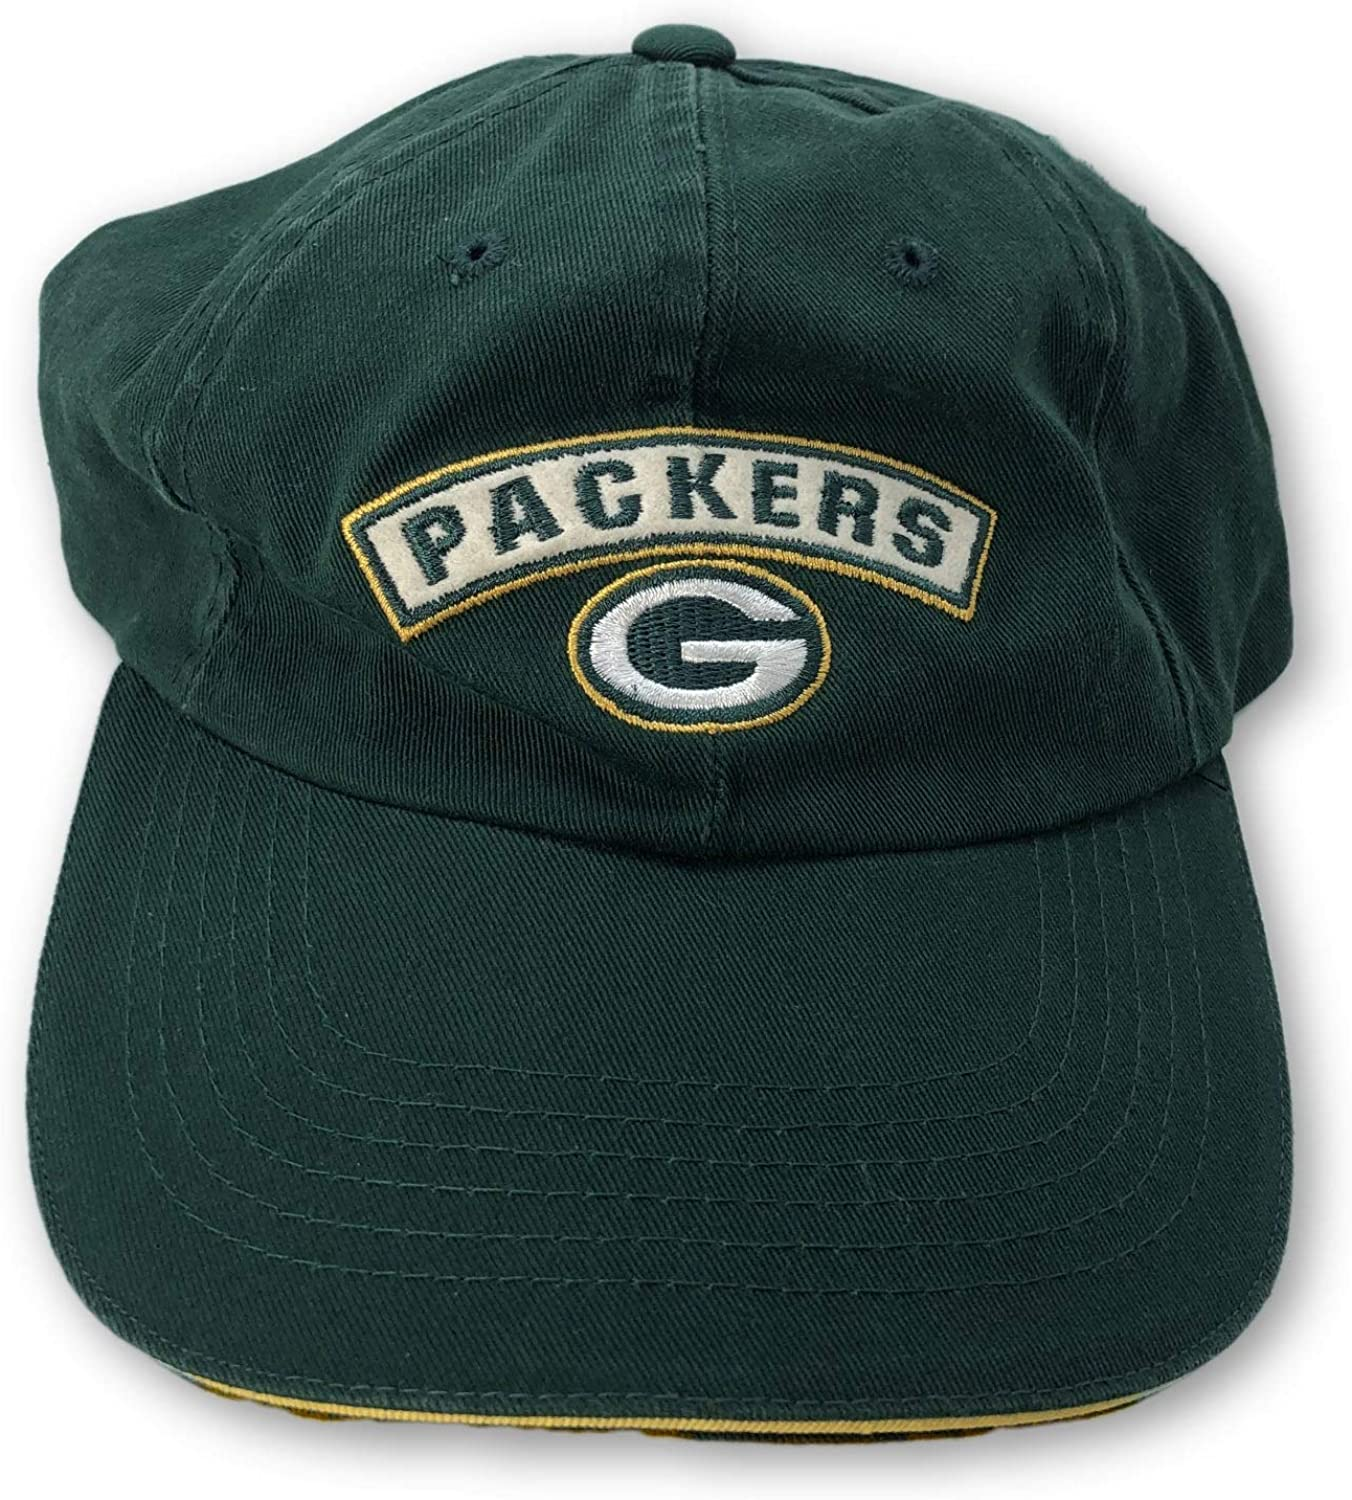 American Needle Green Bay Packers Vintage Adjustable Hat Green